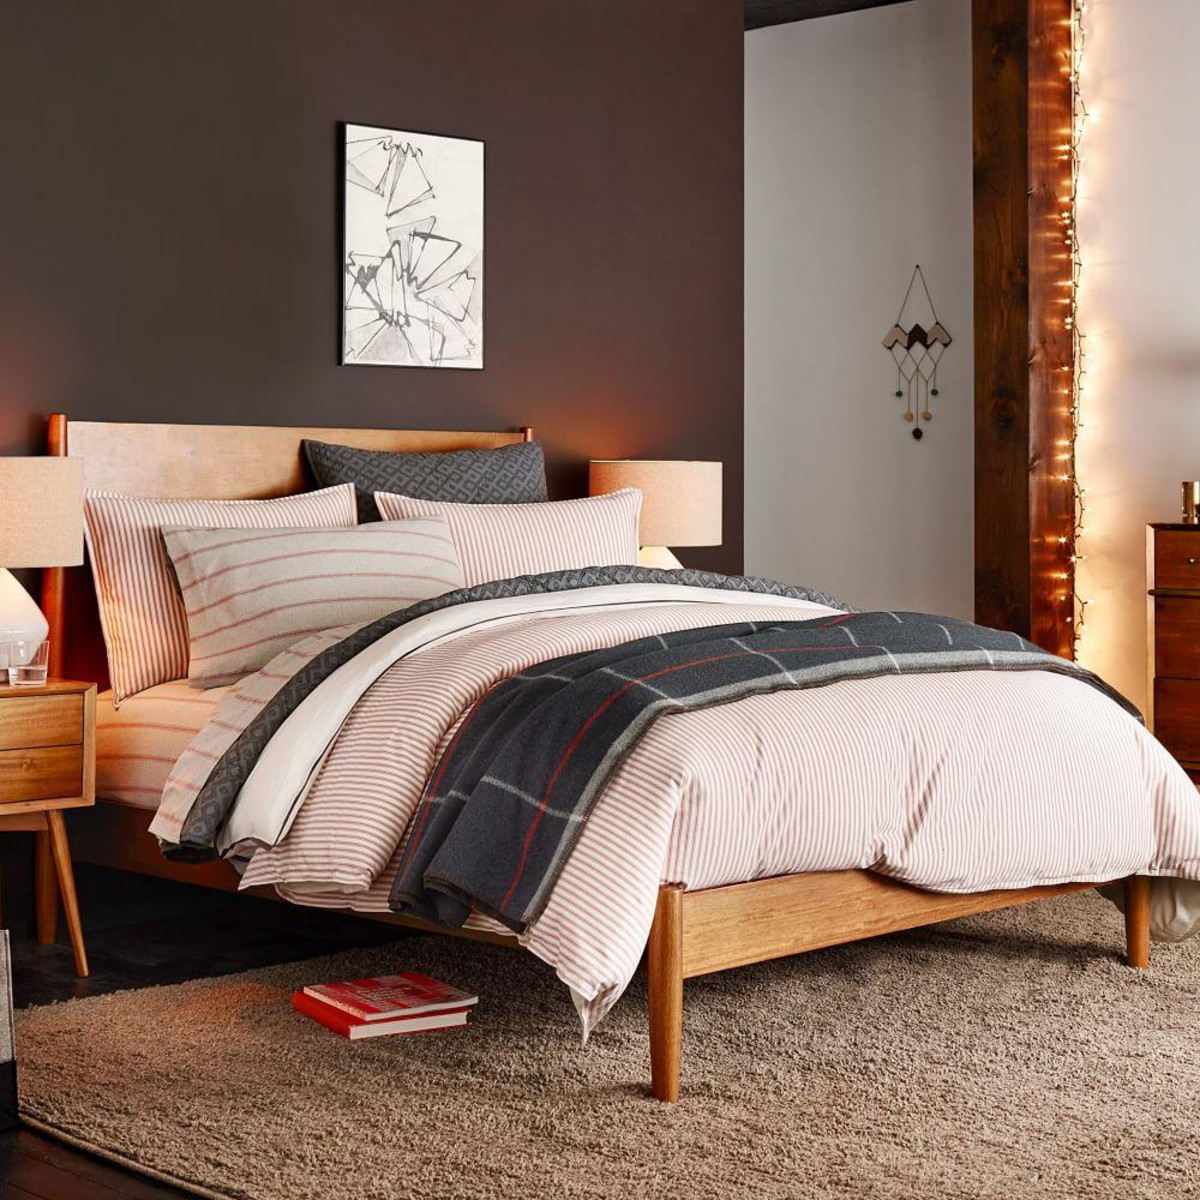 Is West Elm Furniture Good Quality: West Elm Mid-Century Bed Review